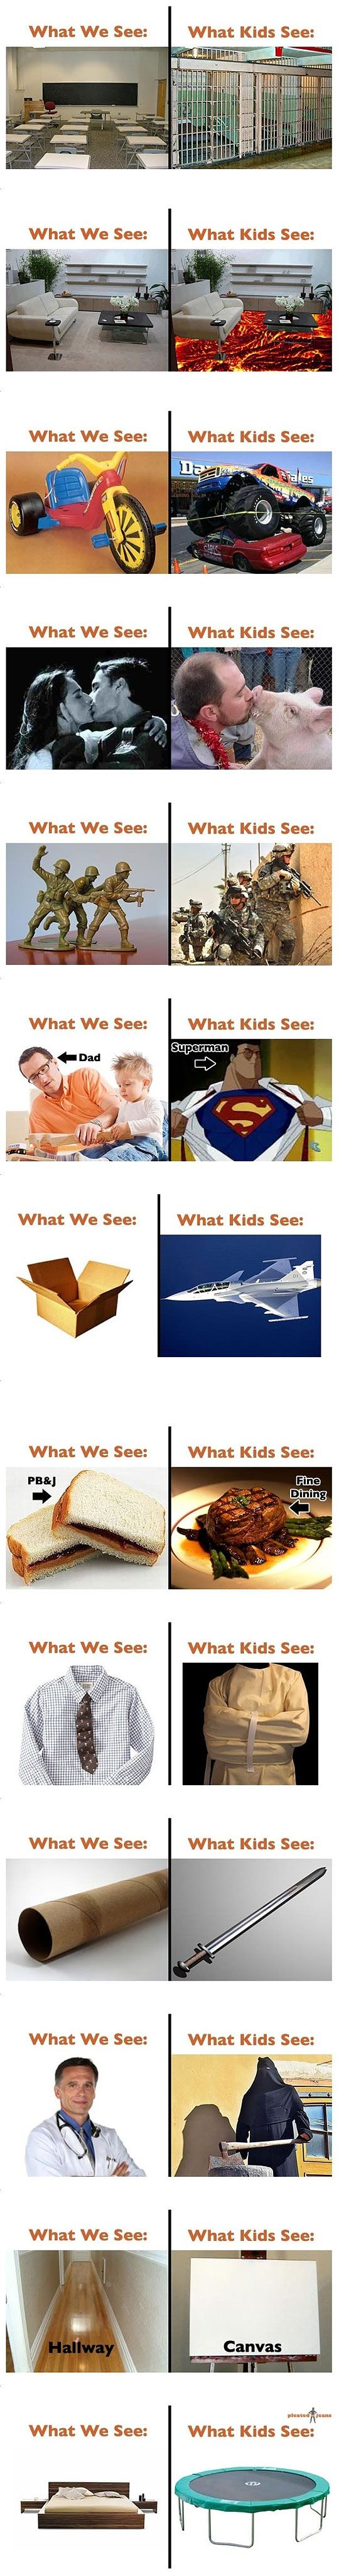 What we see vs. what kids see  Wow, I'm glad to know that some of these things I still perceive with a child's perception.  Now if I can only figure out how to get from the big chair to the back door without landing in the lava!